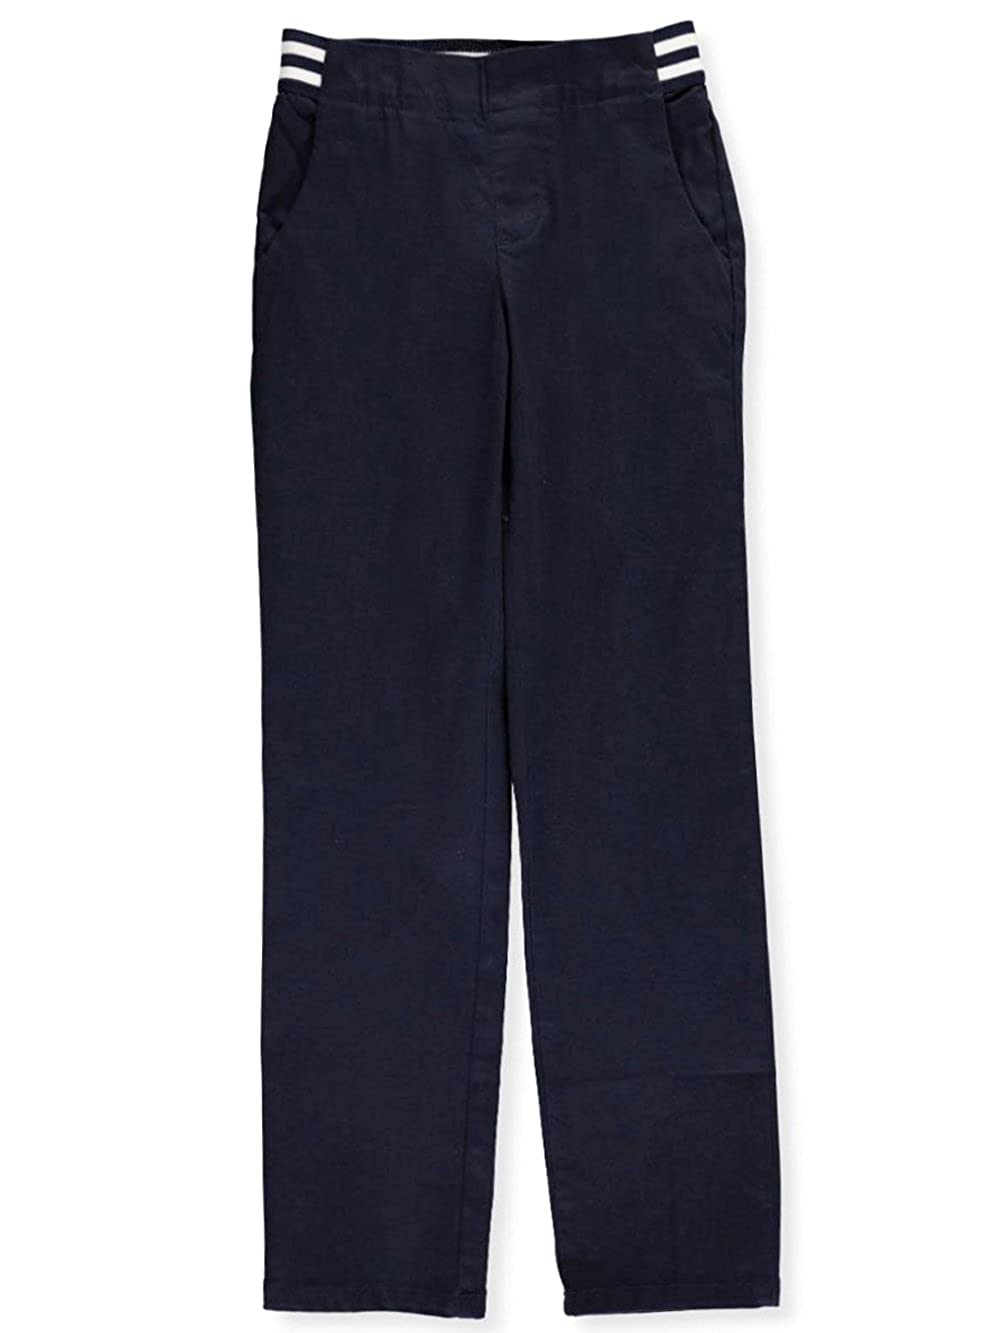 French Toast Big Girls' Pull-On Contrast Waist Pants - Navy, 16